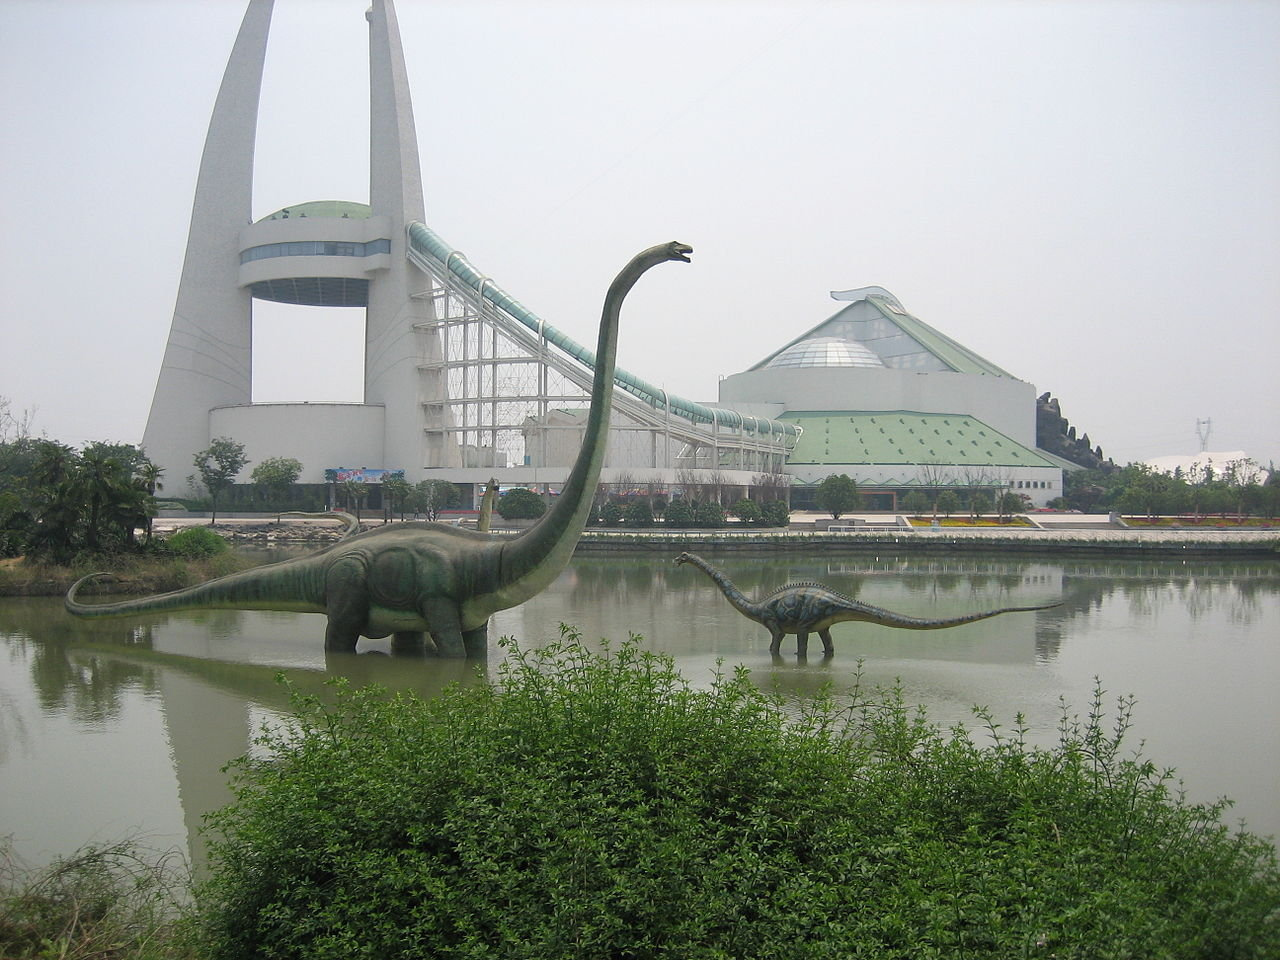 China Dinosaurs Park's lake